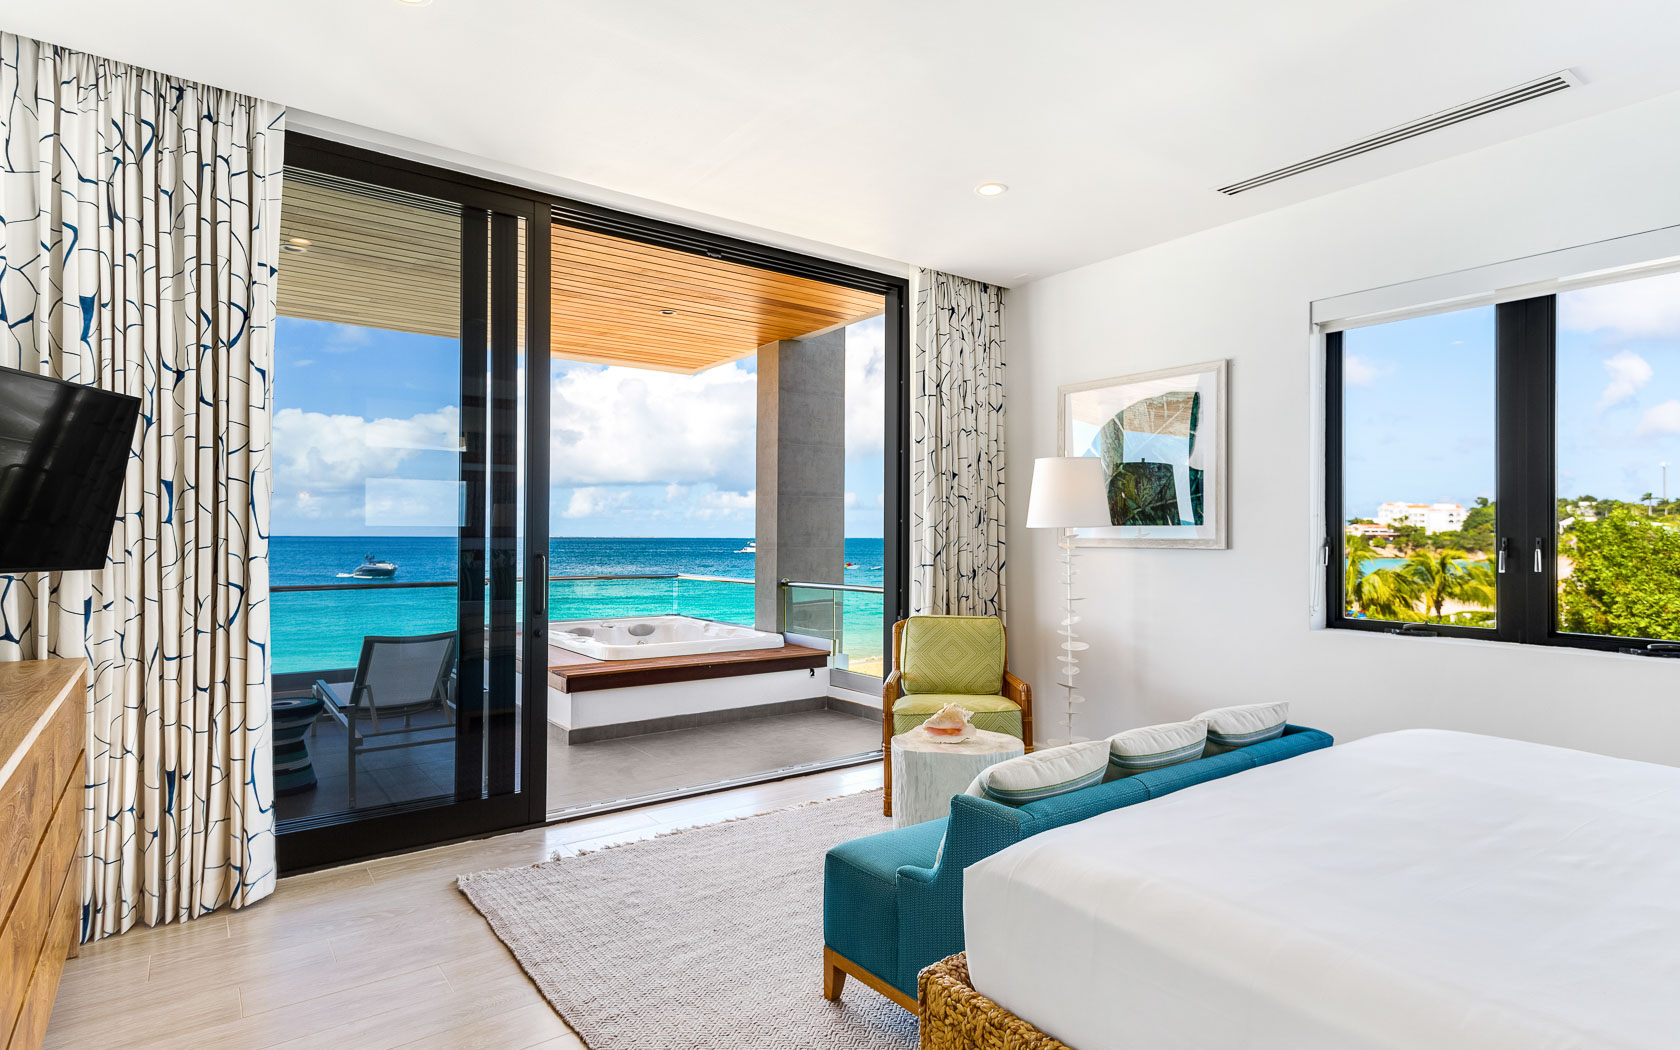 bedroom with bed facing glass doors and views of ocean